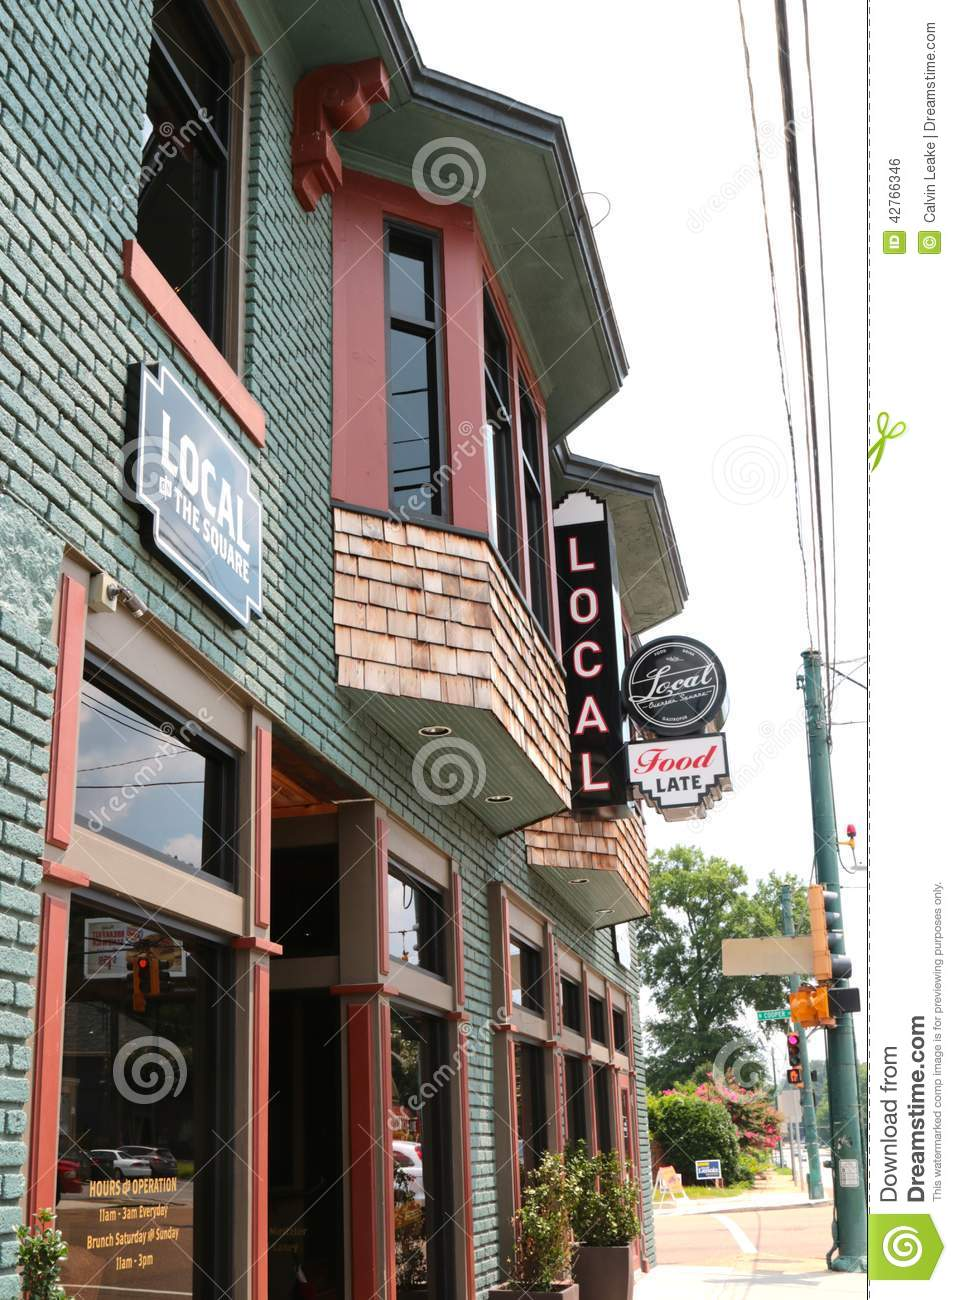 local 39 s bar and eatery memphis tennessee editorial photo image 42766346. Black Bedroom Furniture Sets. Home Design Ideas